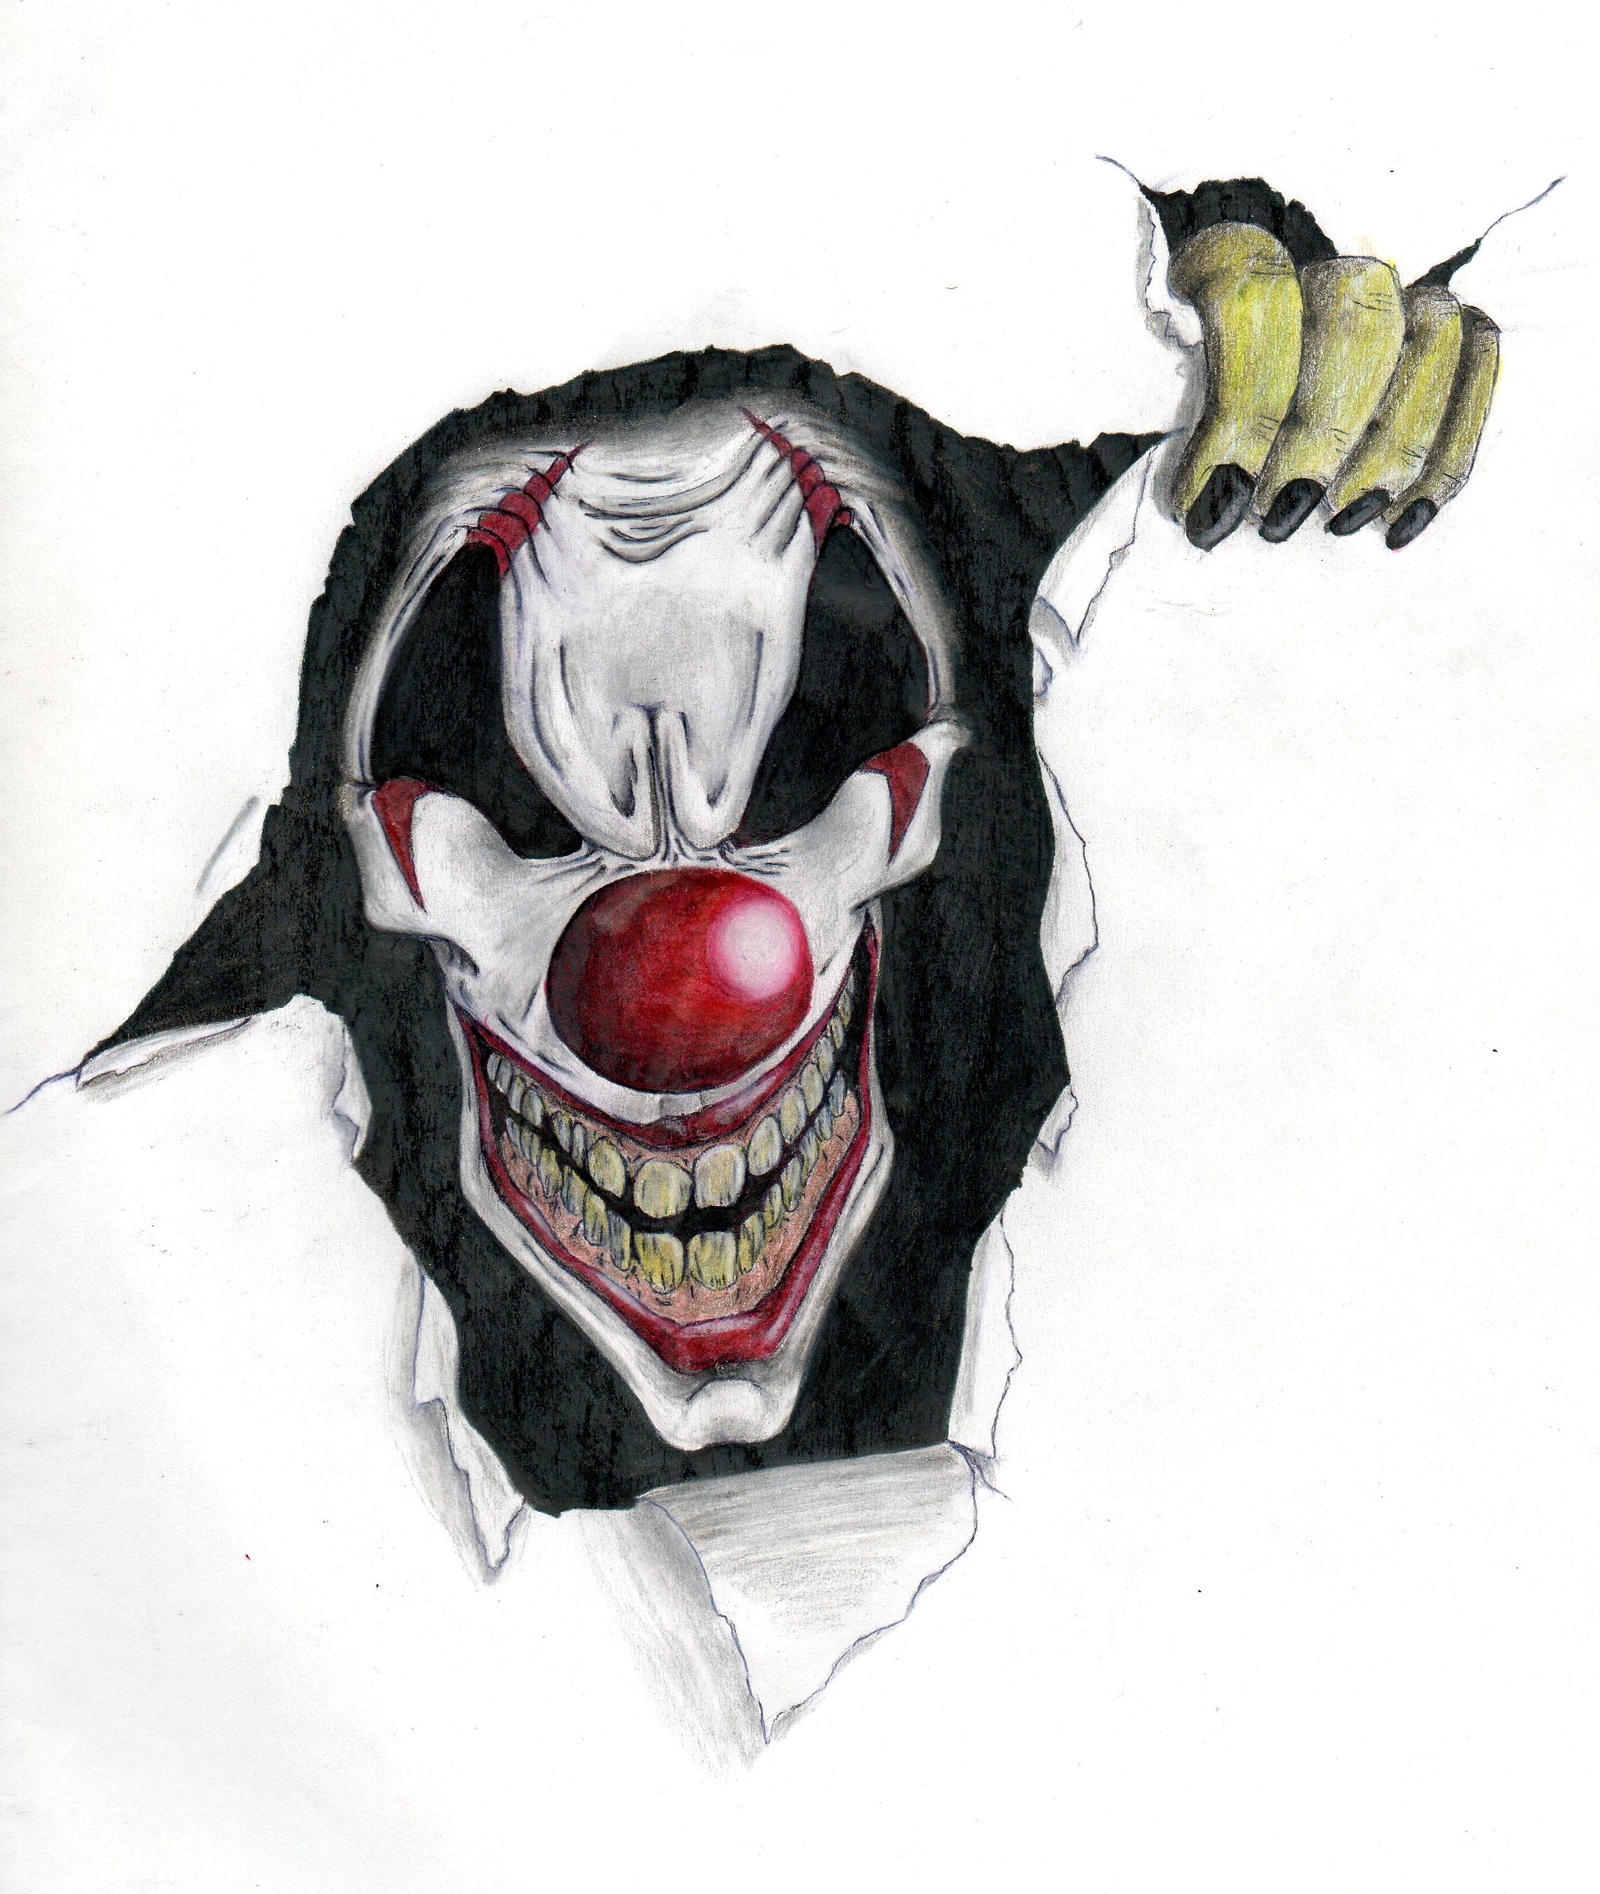 Evil clown 2 by exau on DeviantArt